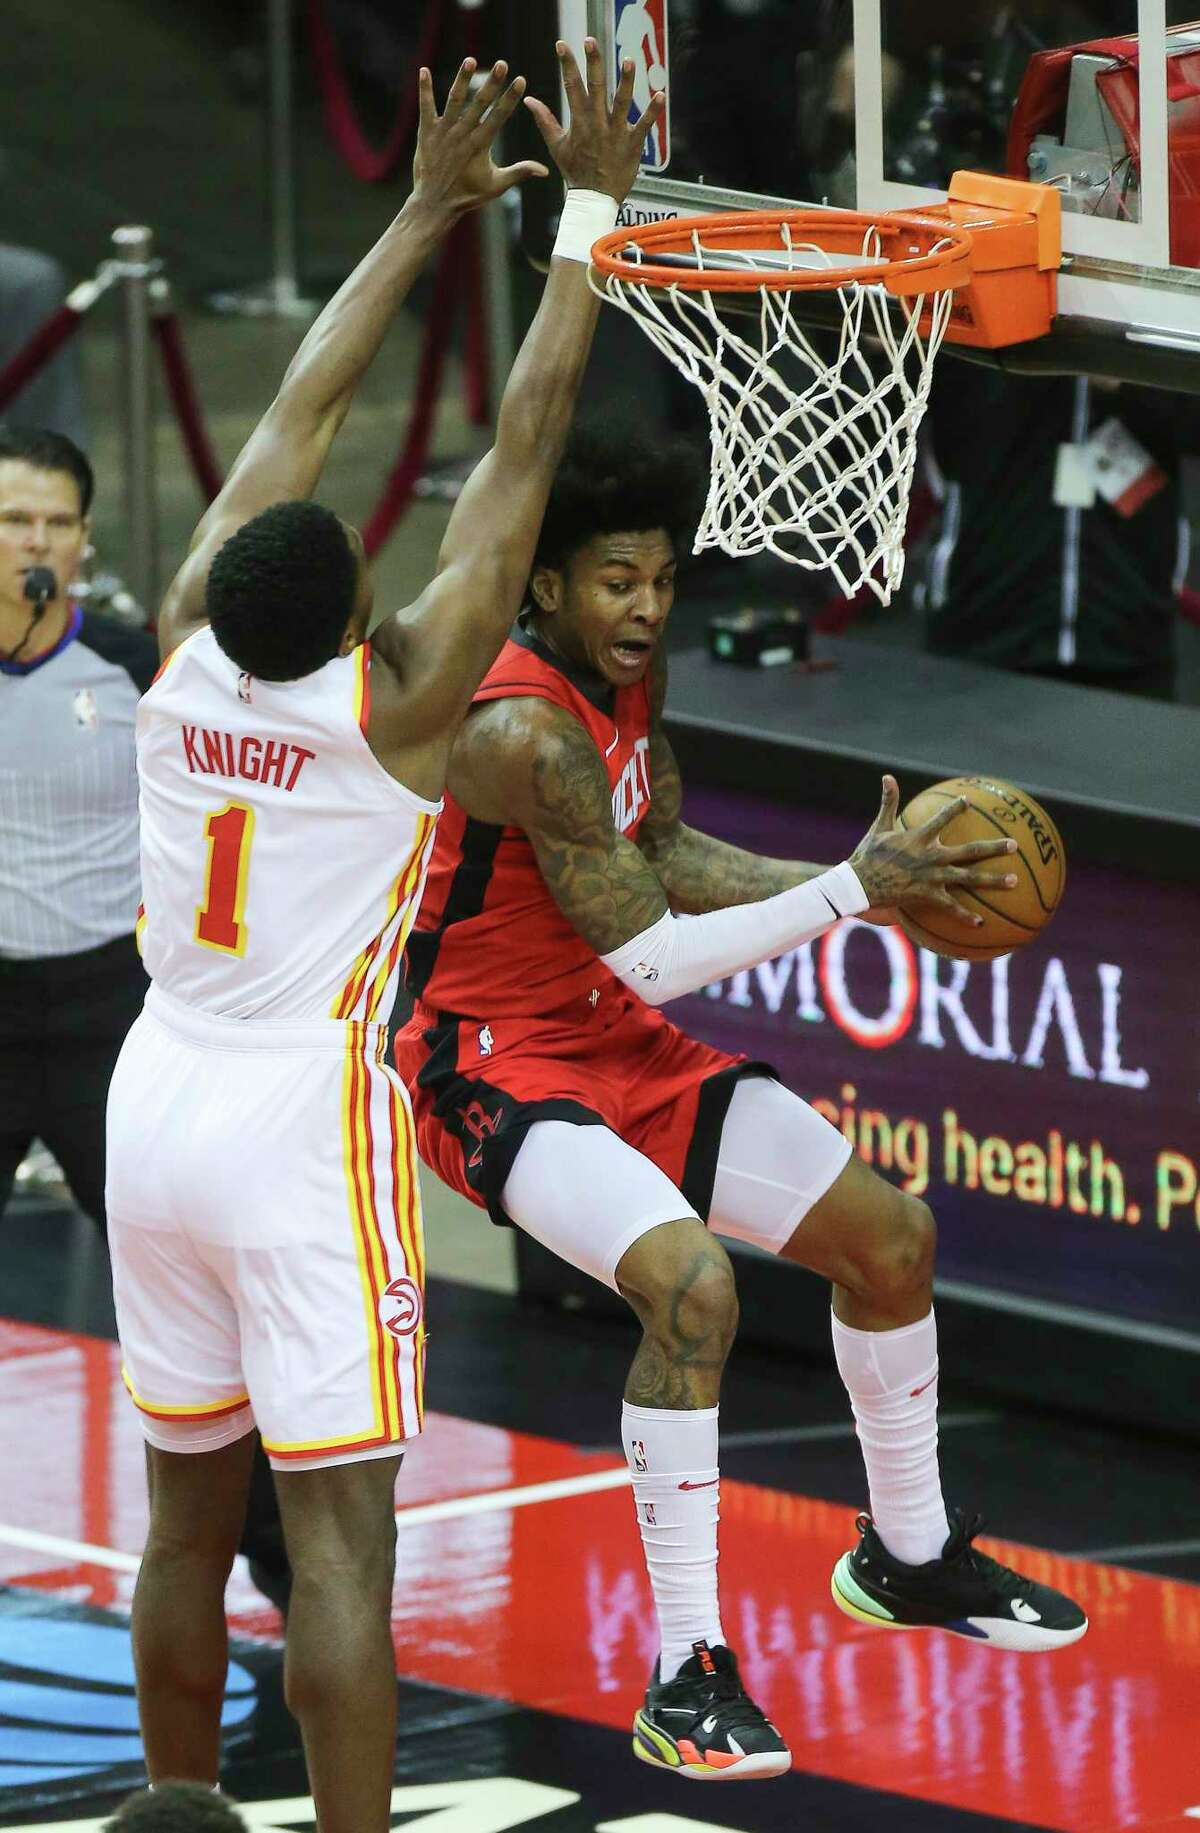 Houston Rockets guard Kevin Porter Jr. (3) attempts to score the basket under Atlanta Hawks forward Nathan Knight (1) during the first quarter of the NBA game Tuesday, March 16, 2021, at Toyota Center in Houston.